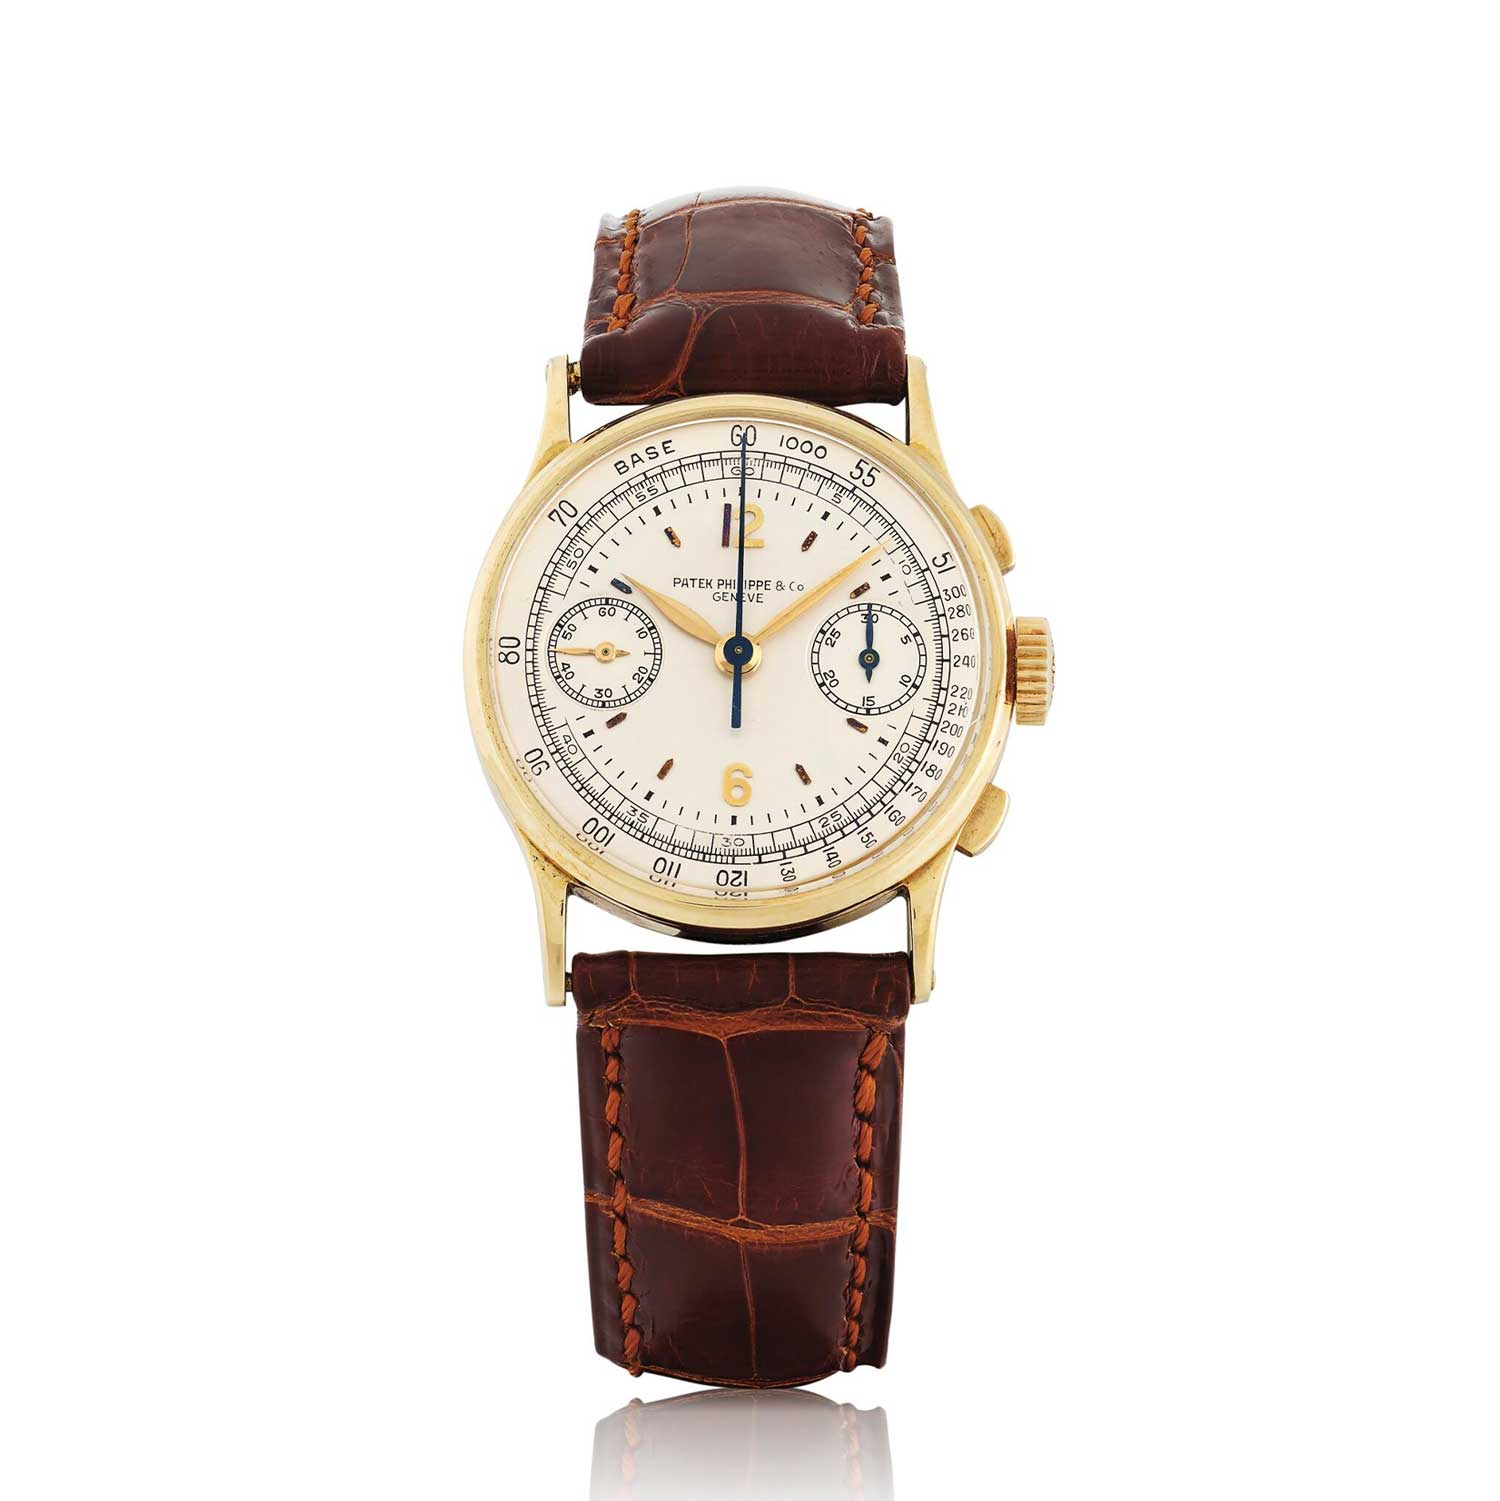 1938 Patek Philippe chronograph ref. 130 in yellow gold with Arabic numerals (Image: Sothebys.com)